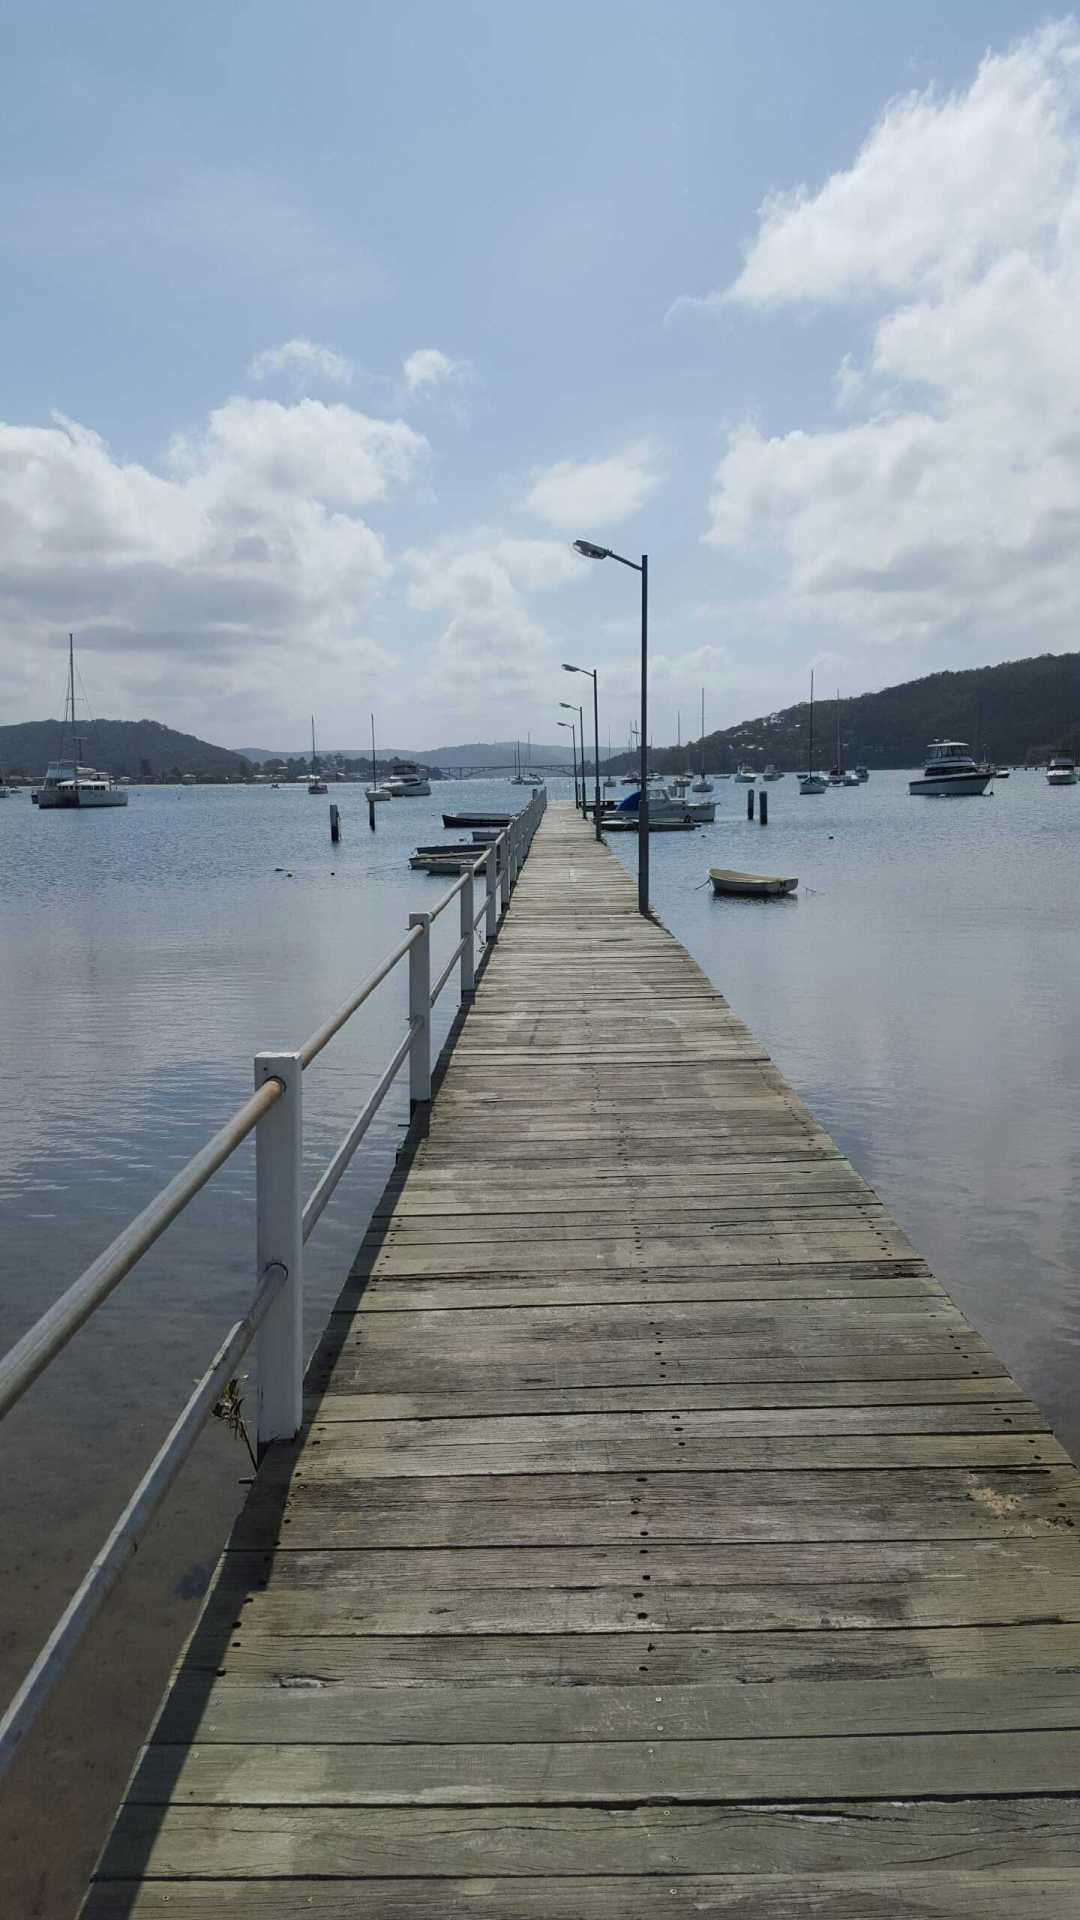 The Public Jetty